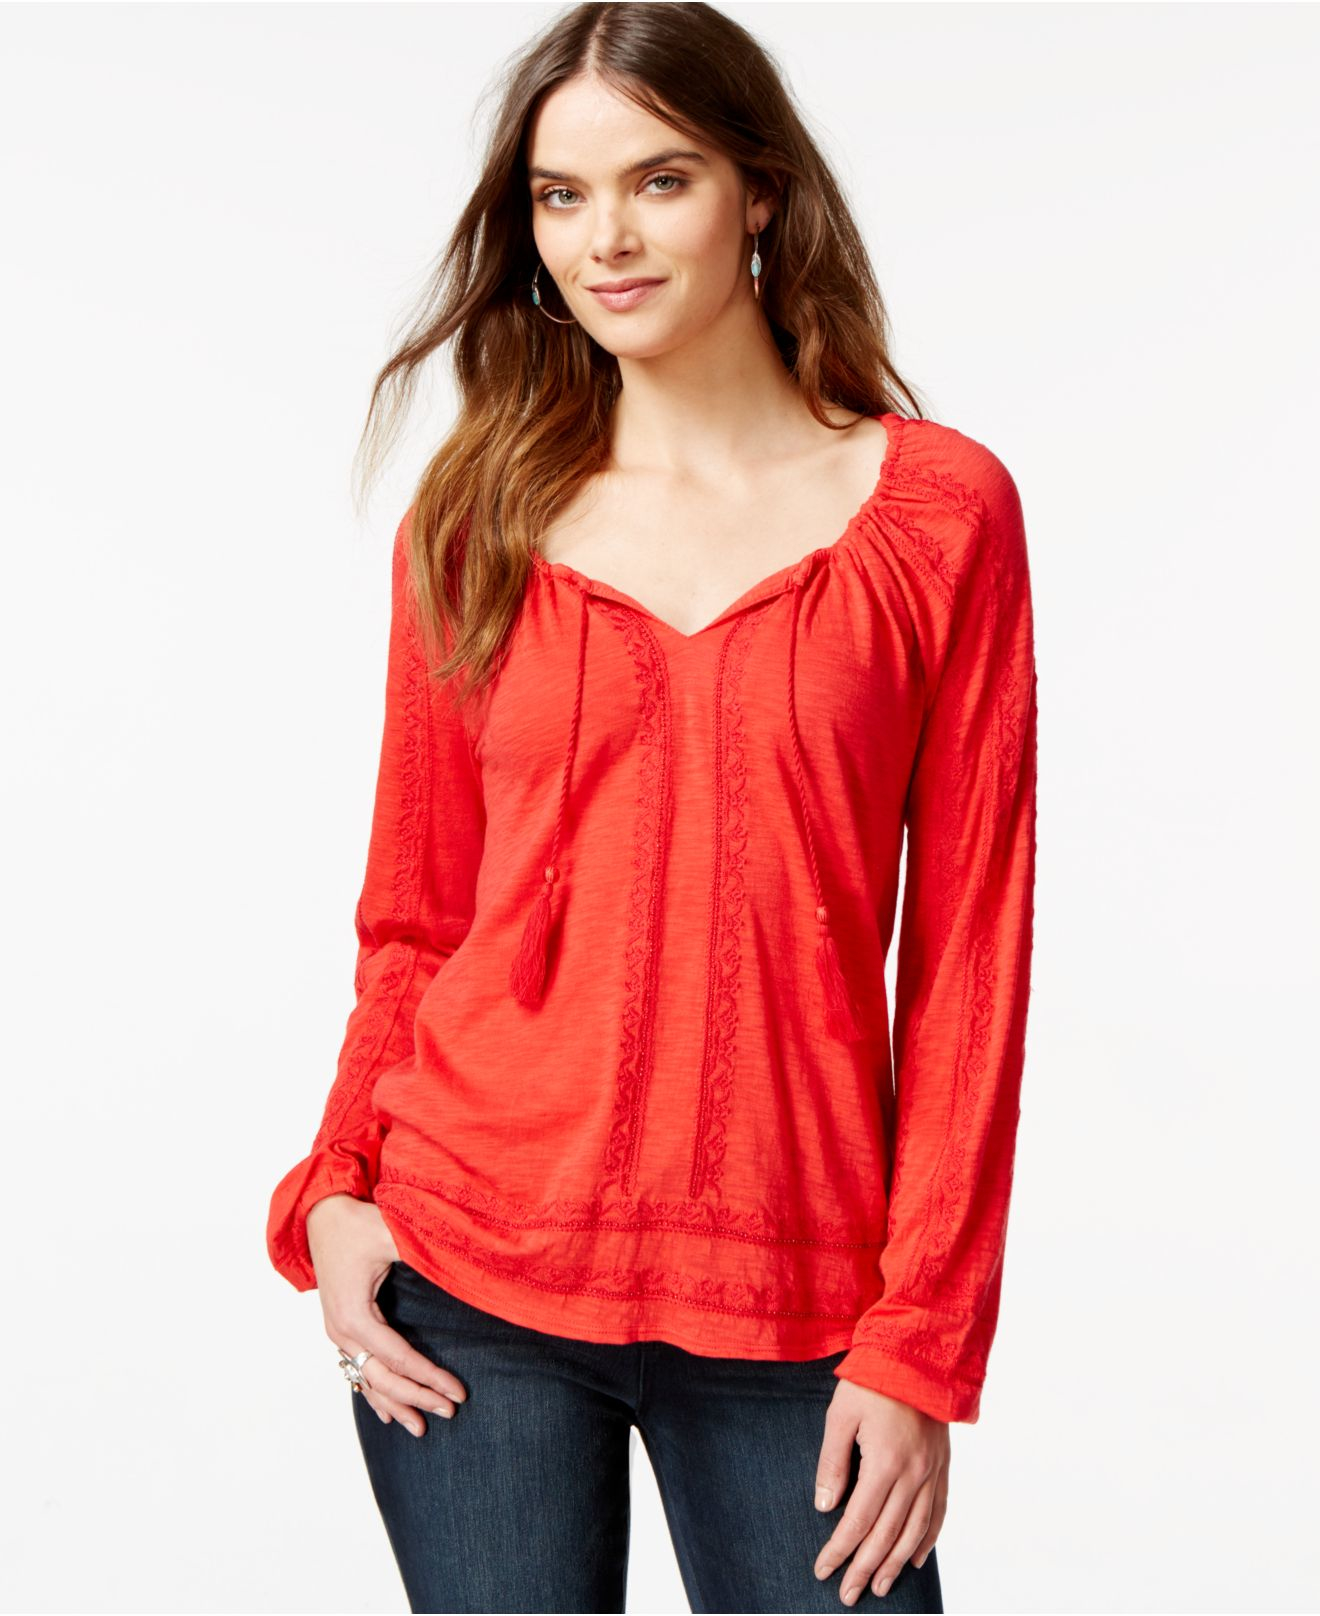 324c1d0b44468 Lyst - Lucky Brand Lucky Brand Embroidered Peasant Blouse in Red